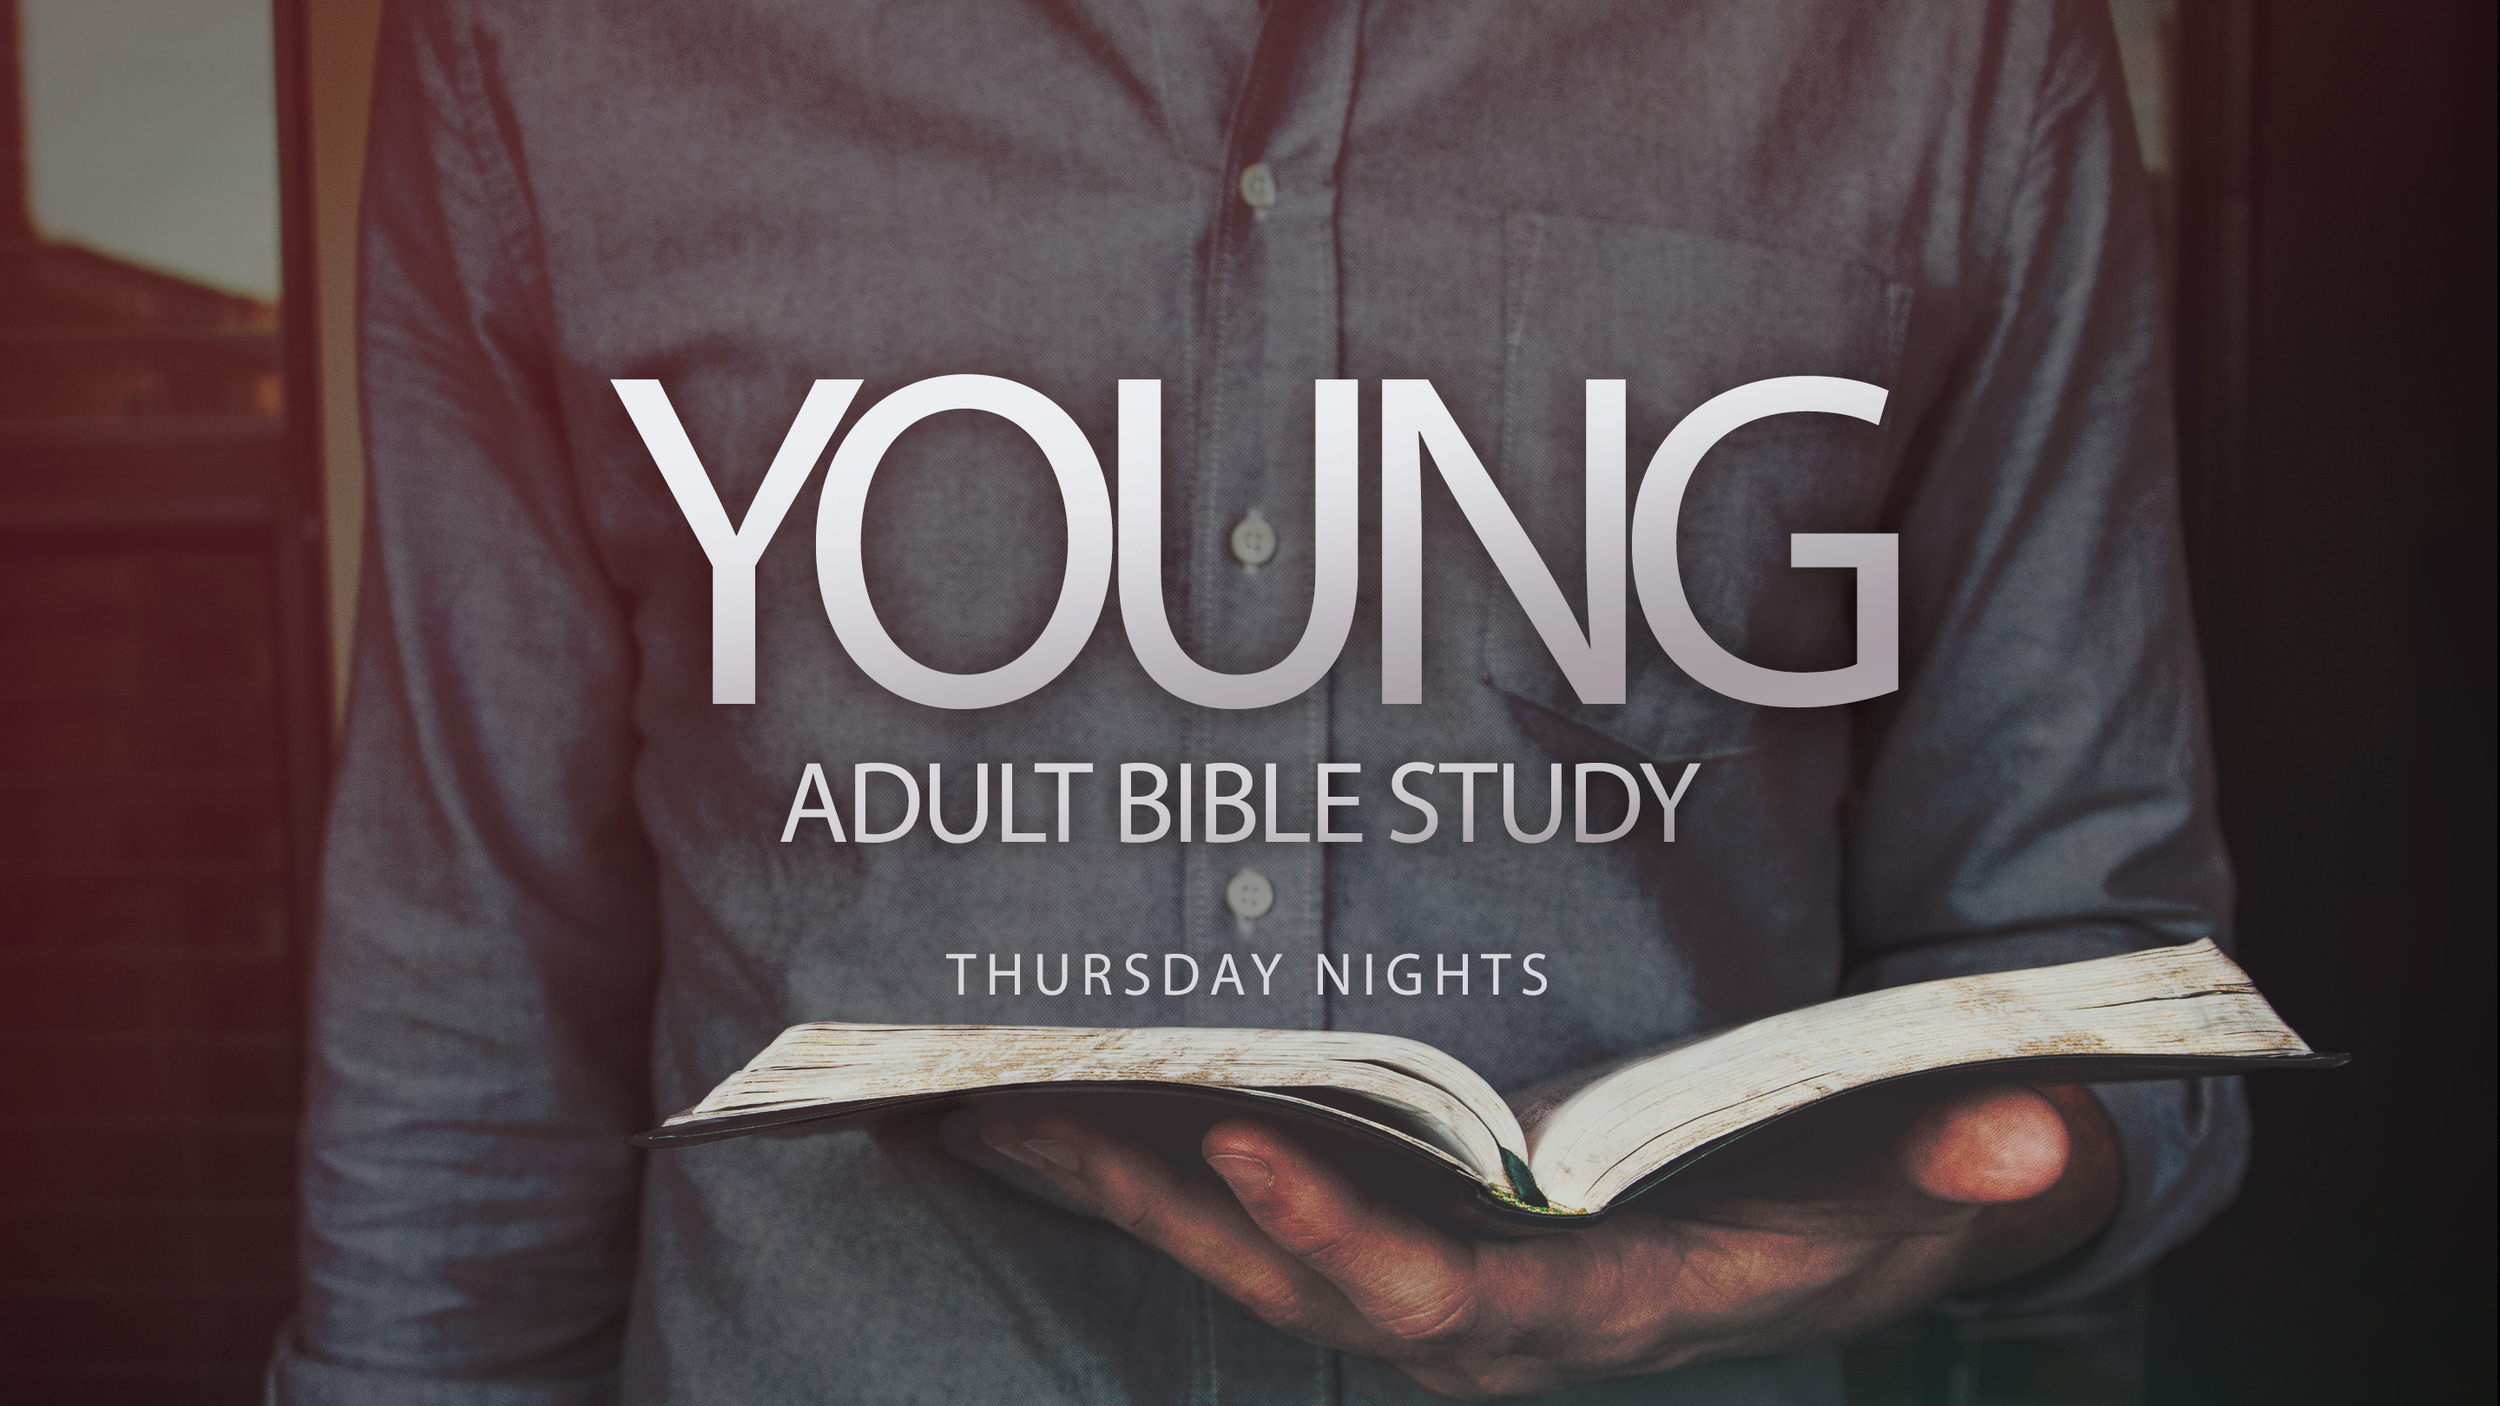 Join us in the youth room at 6:30!